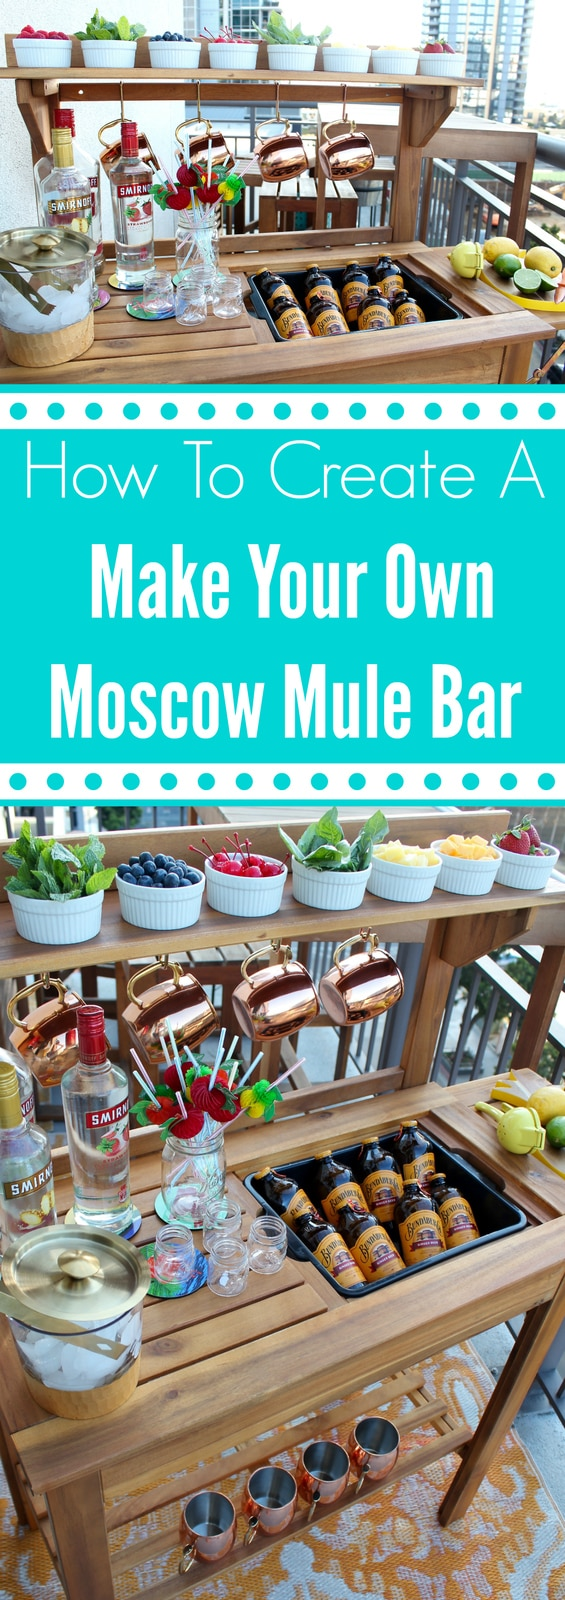 How To Create A Make Your Own Moscow Mule Bar